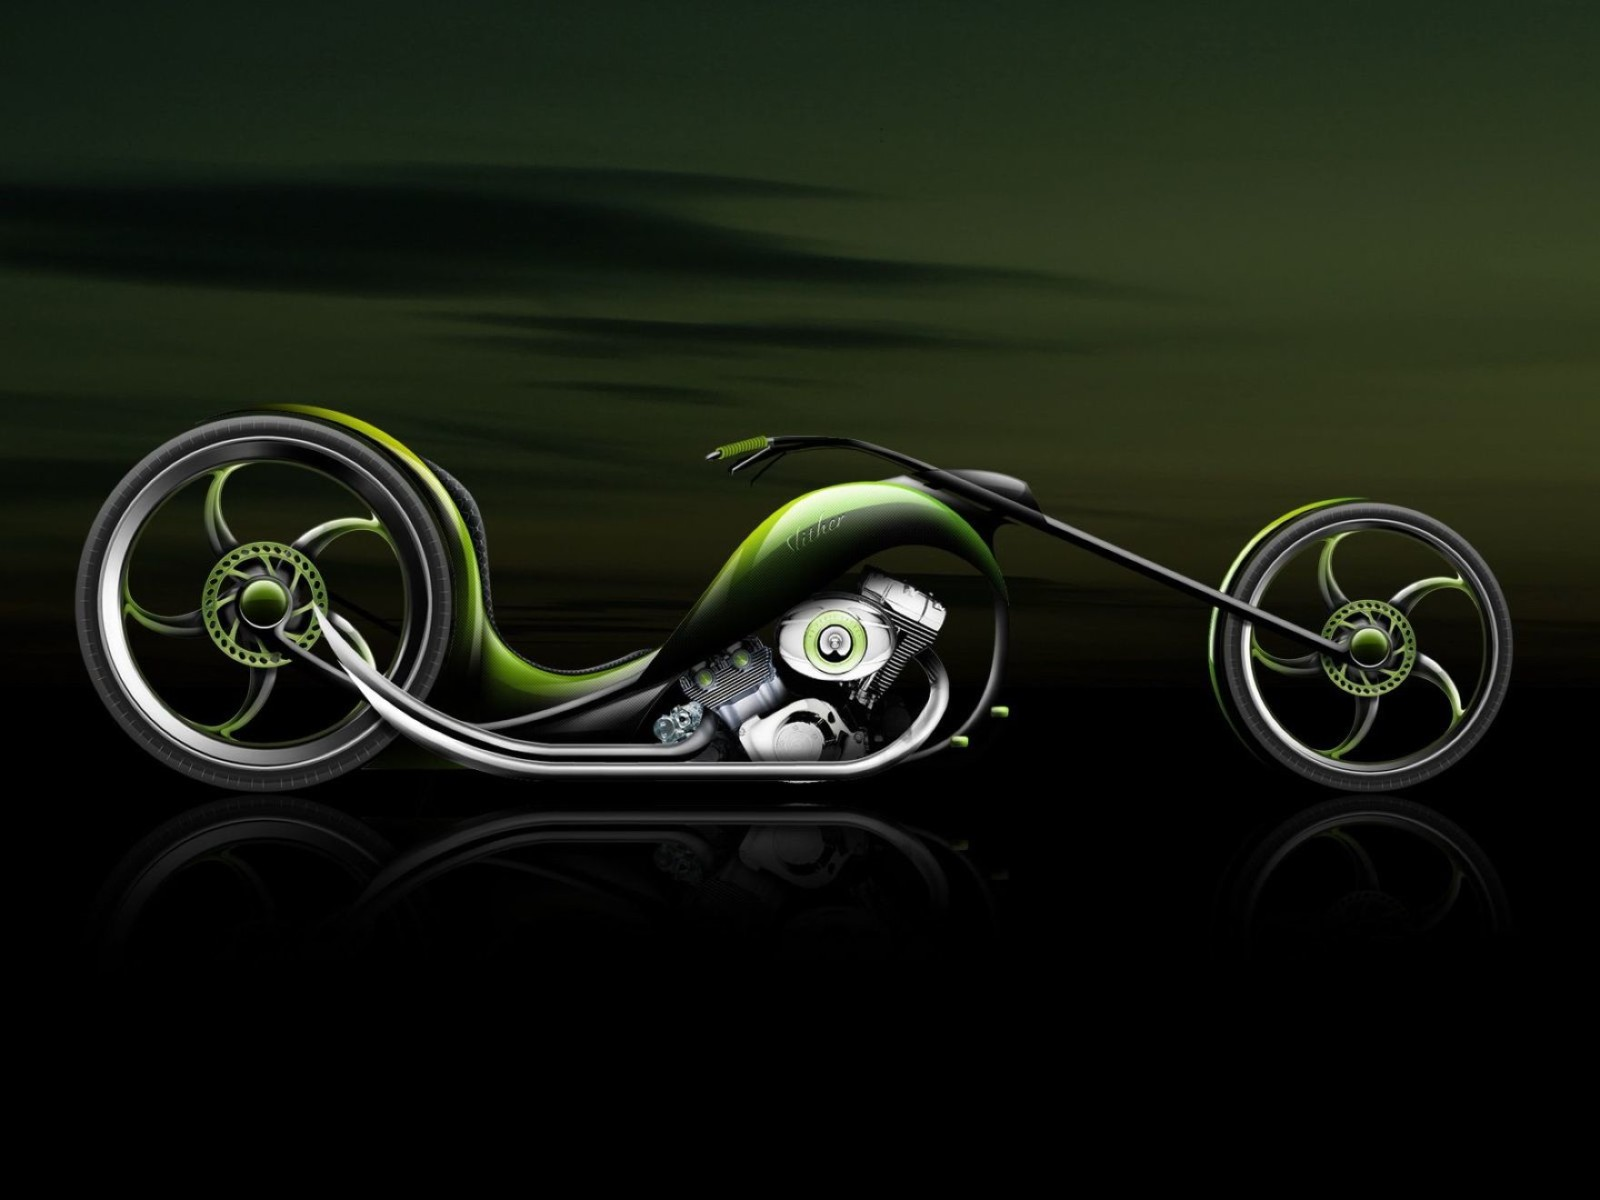 Desktop 3D Bike Animation For Window 7 Wallpaper